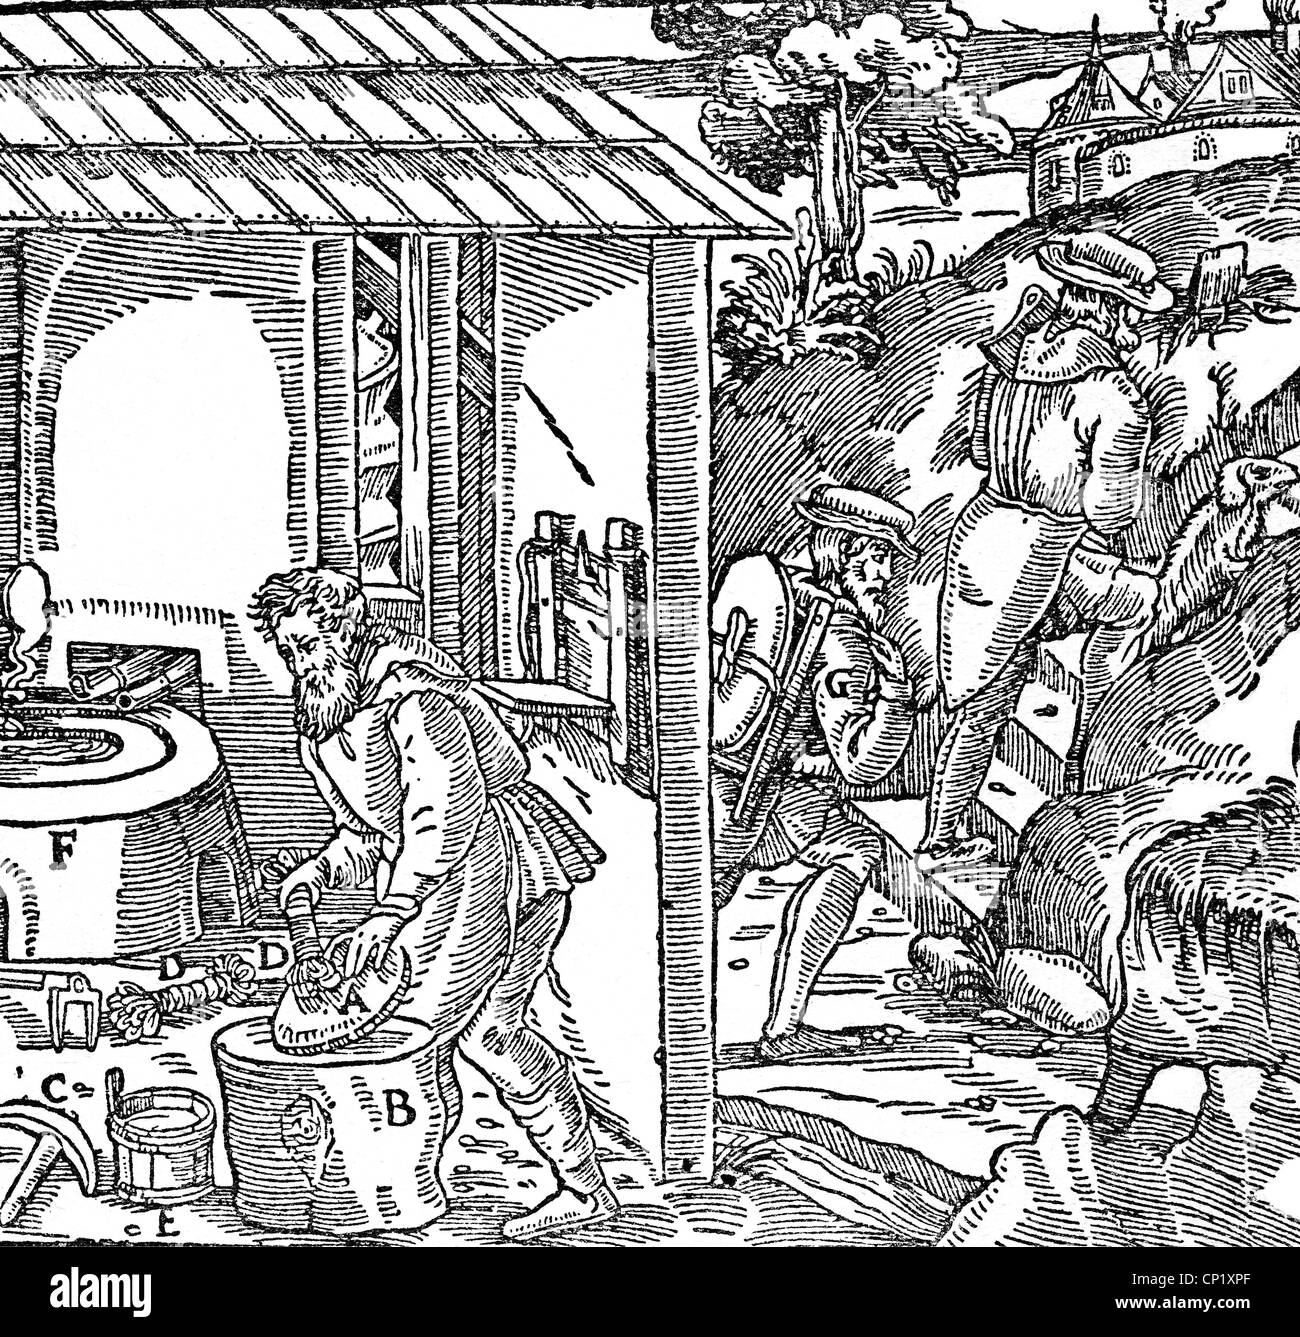 de re metallica black and white stock photos images alamy Temple De Re mining mine taking out and transporting lead ore woodcut de re